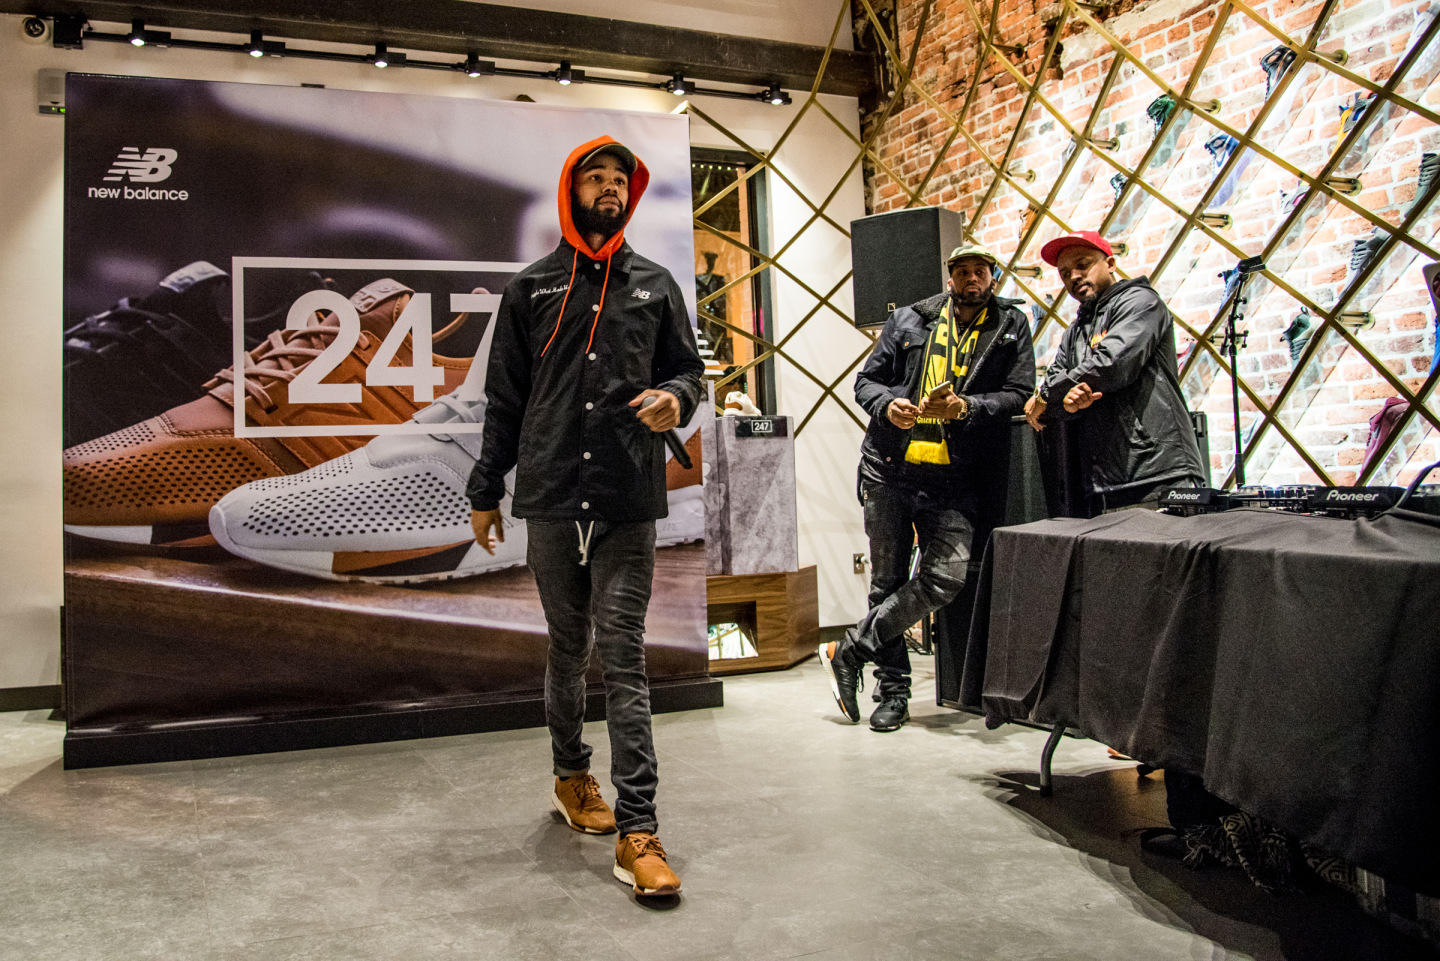 See Photos Of Fabolous, Jadakiss, PnB Rock, And More At New Balance's Luxe Launch Events